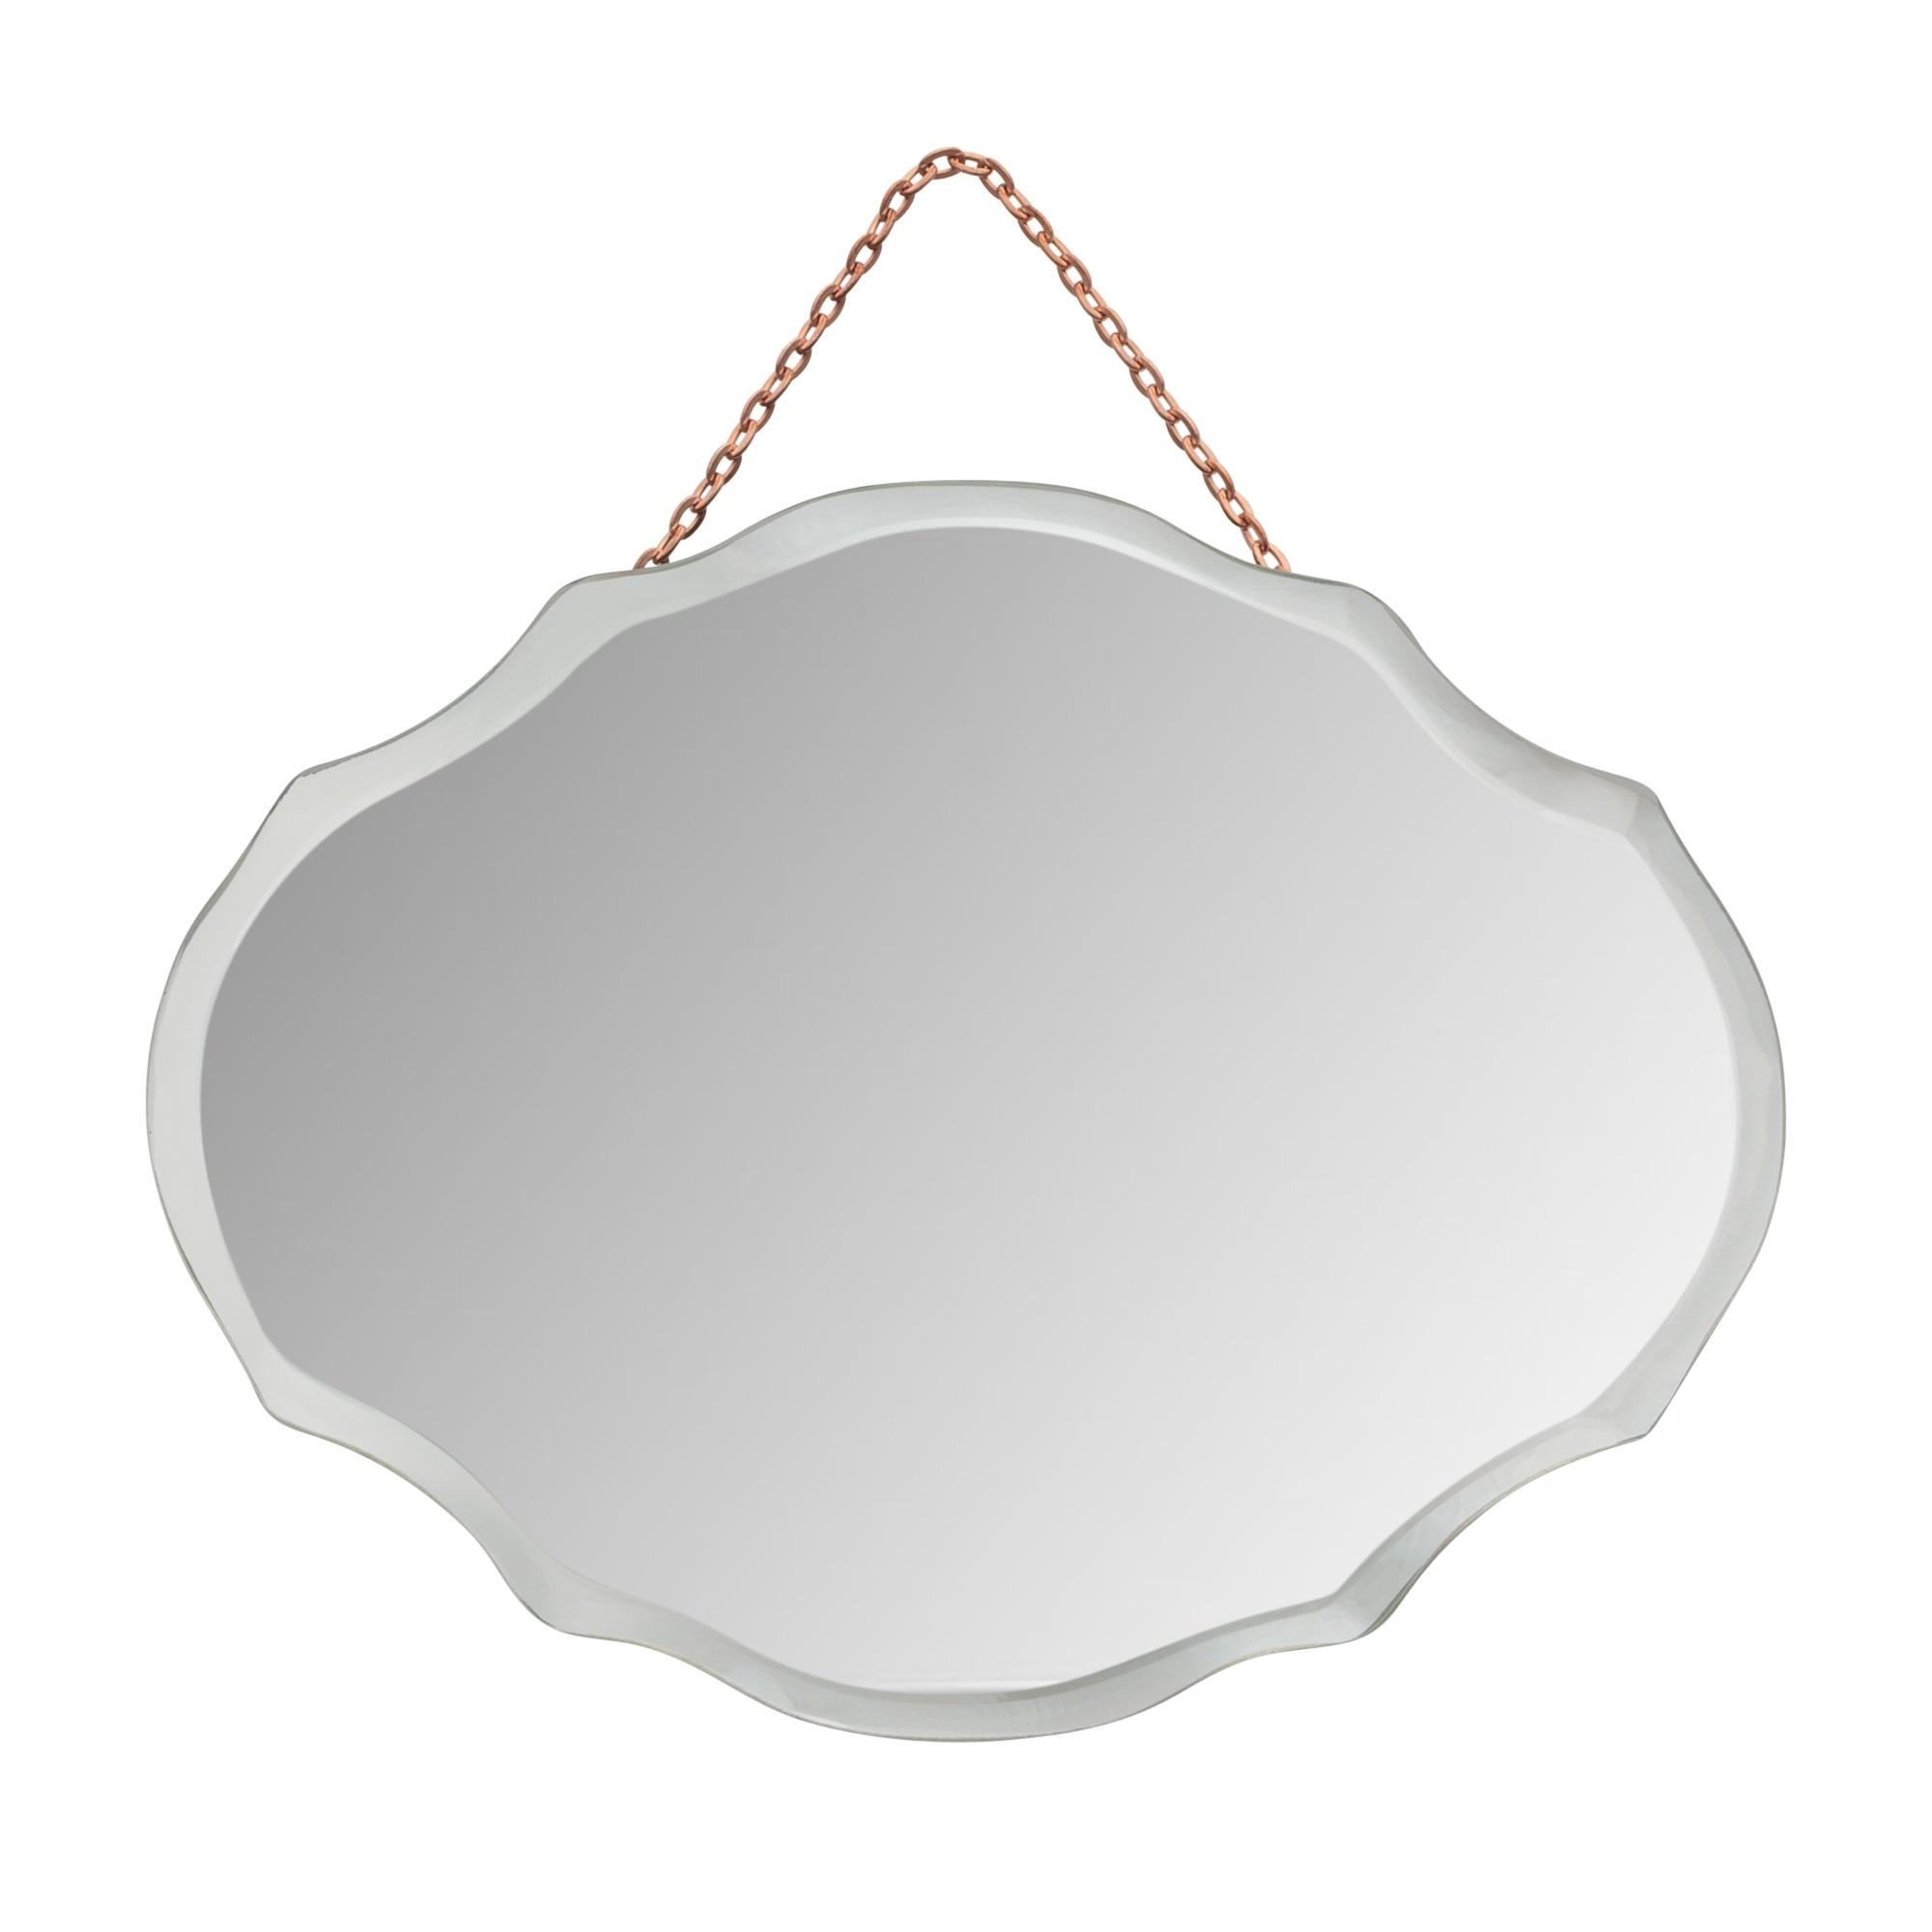 Mini Oval Art Deco Mirror | Oliver Bonas With Buy Art Deco Mirror (Image 16 of 20)